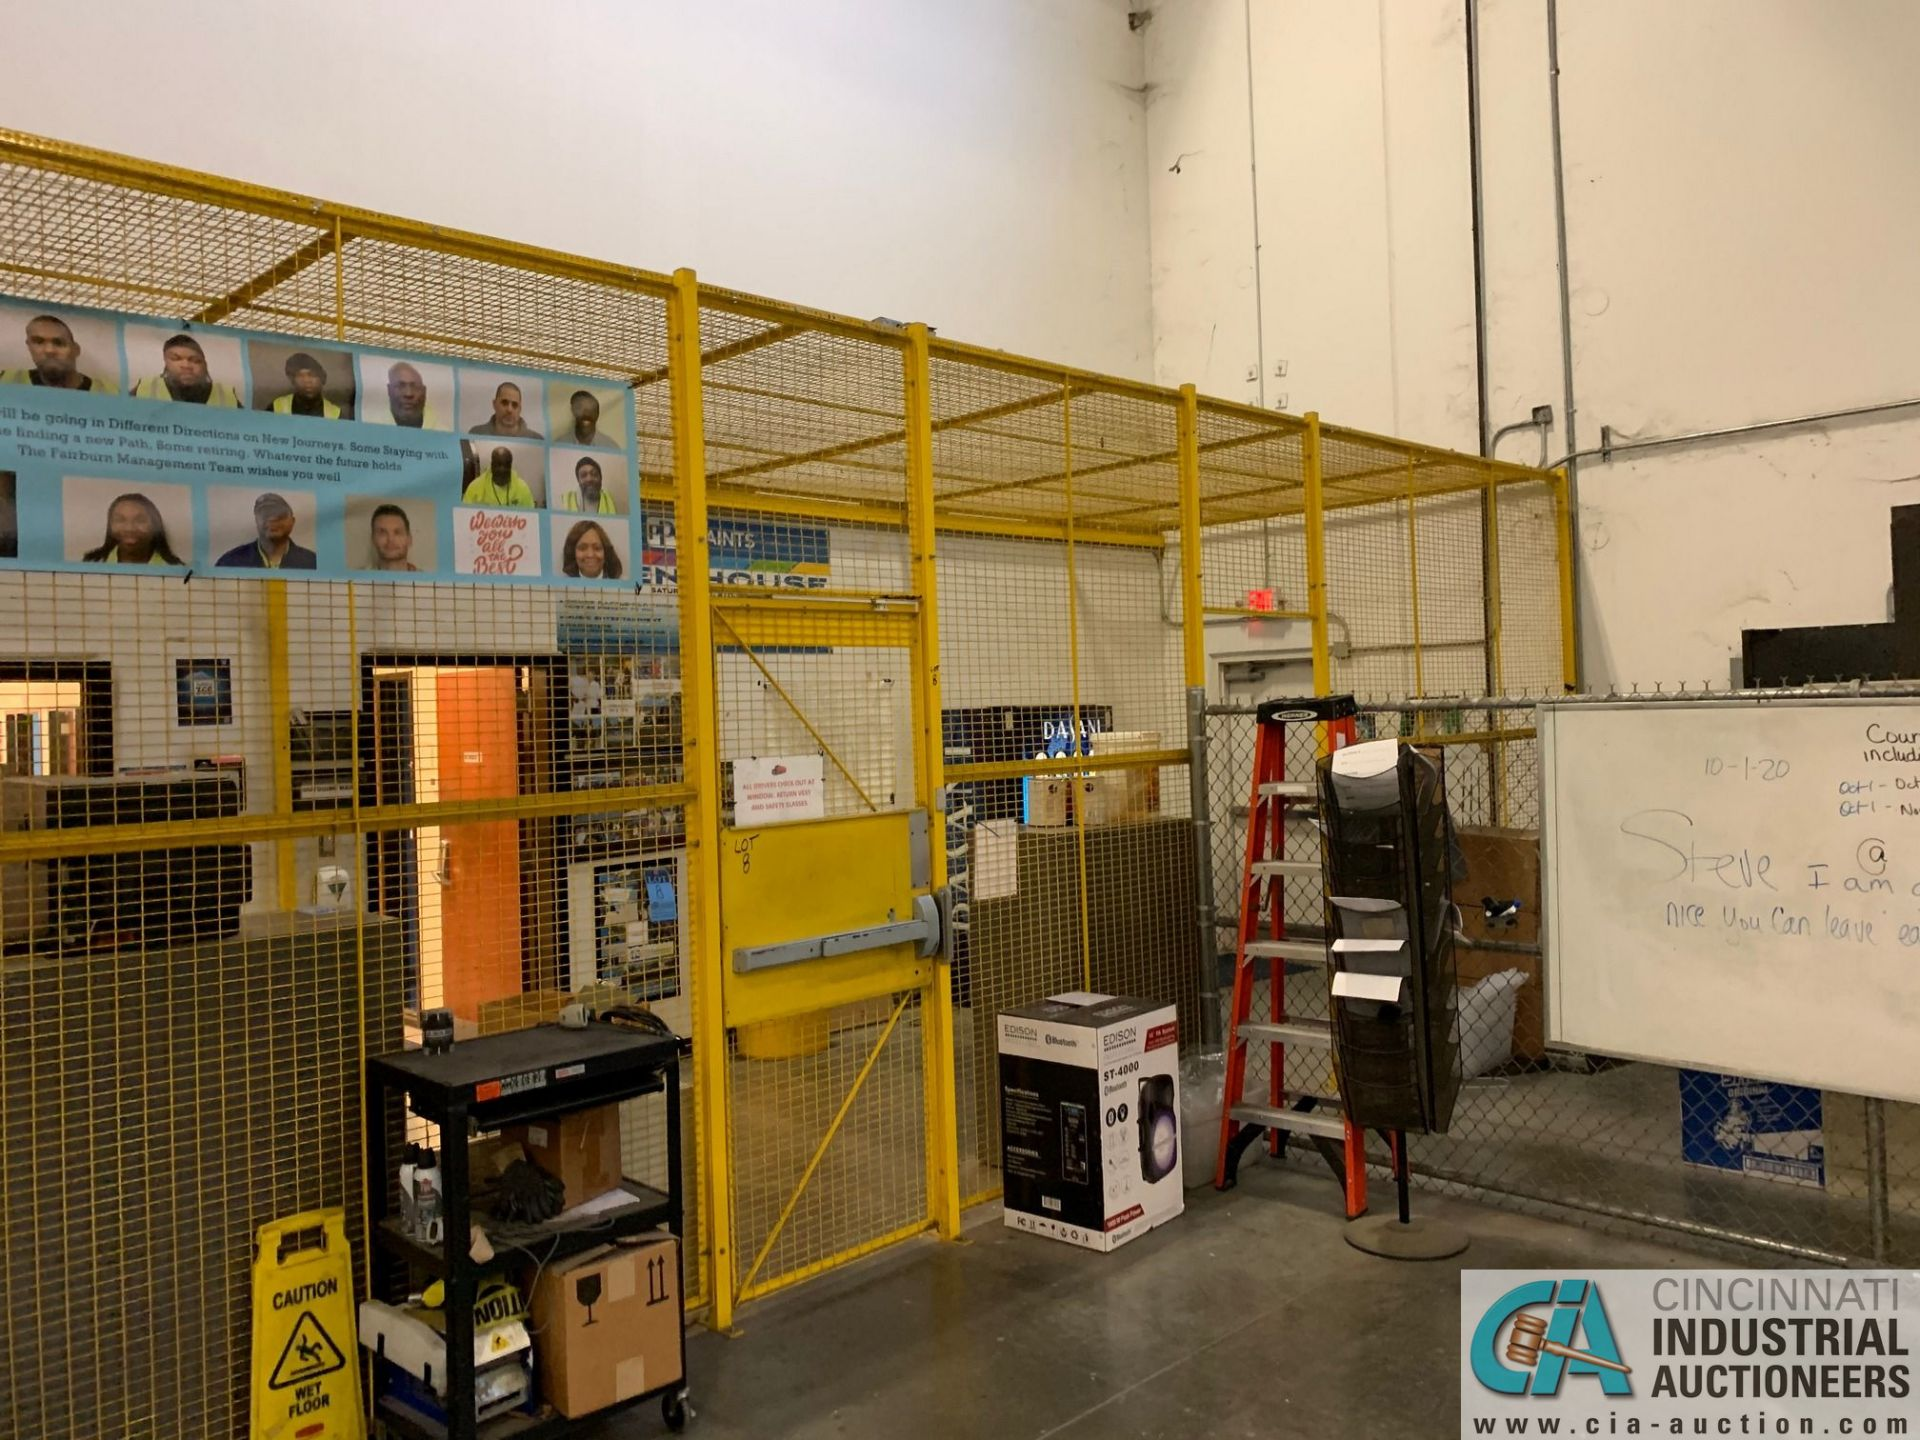 SAFETY CAGE - FRONT DRIVERS (5400 OAKLEY INDUSTRIAL BLVD., FAIRBURN, GA 30213) - Image 3 of 6